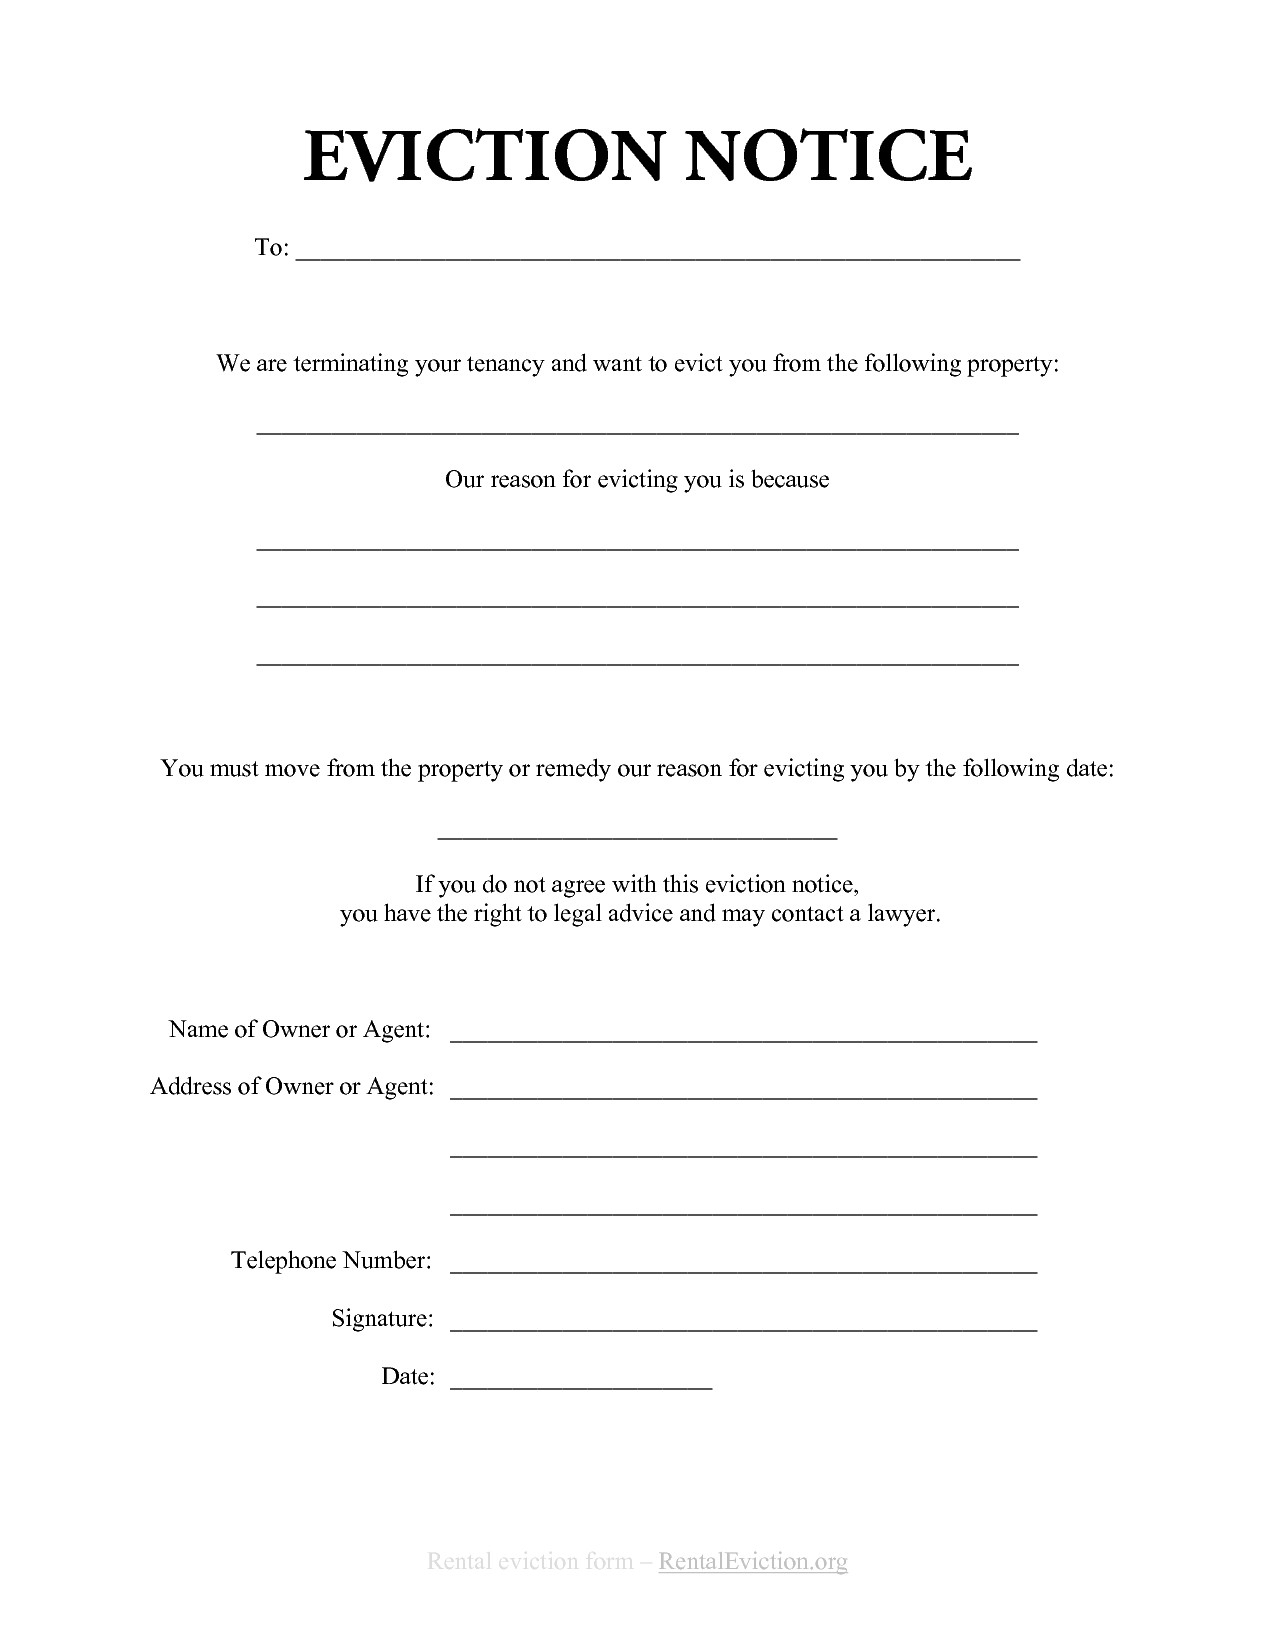 Eviction Notice Template | Charlotte Clergy Coalition - Free Printable Blank Eviction Notice